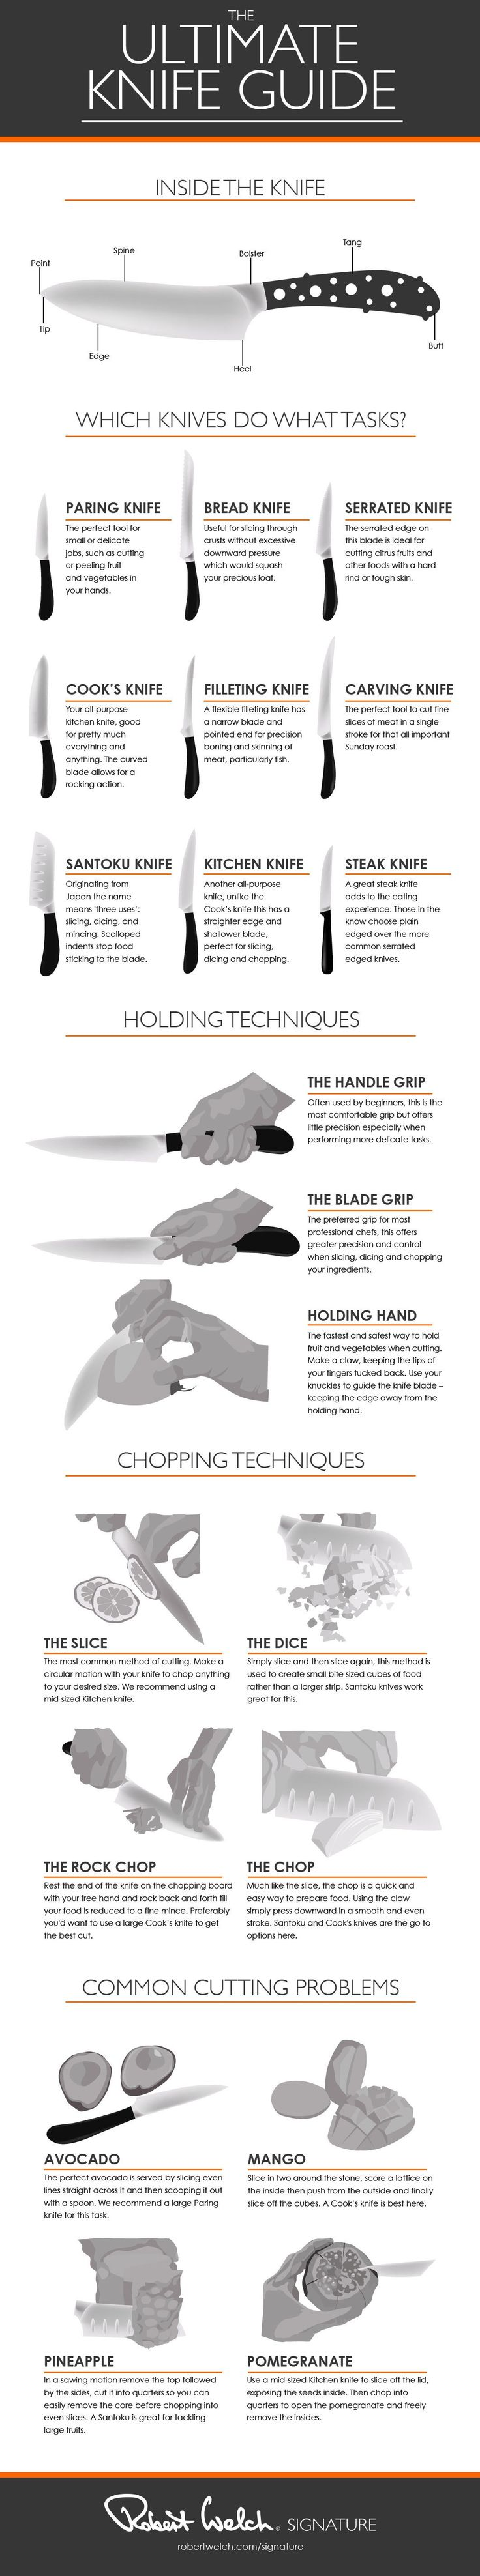 The Ultimate Knife Guide #Infographic #Knife #Kitchen